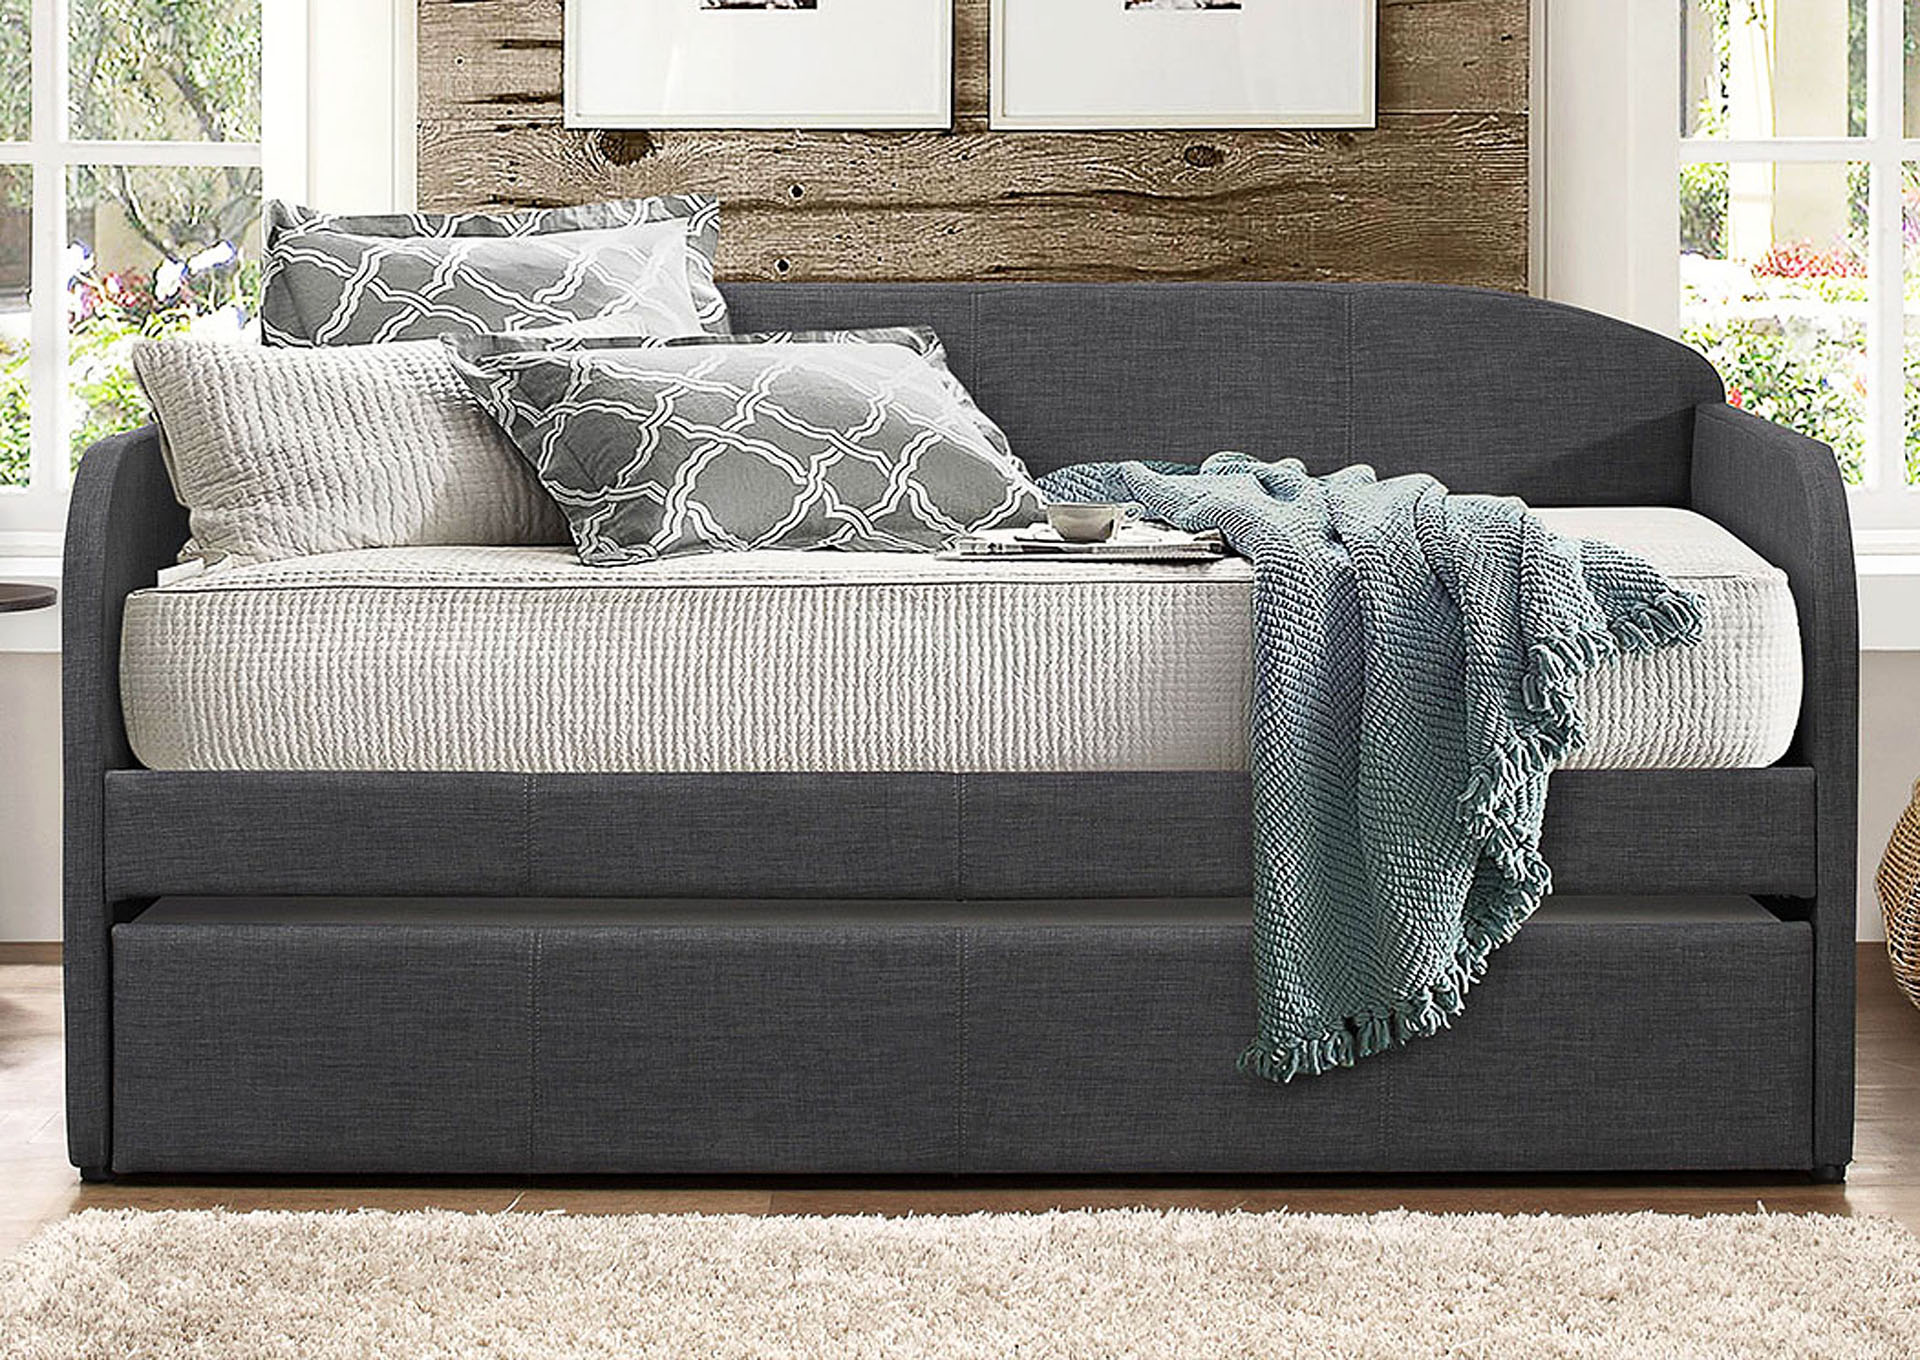 Daybed w/Trundle, Fabric,Homelegance